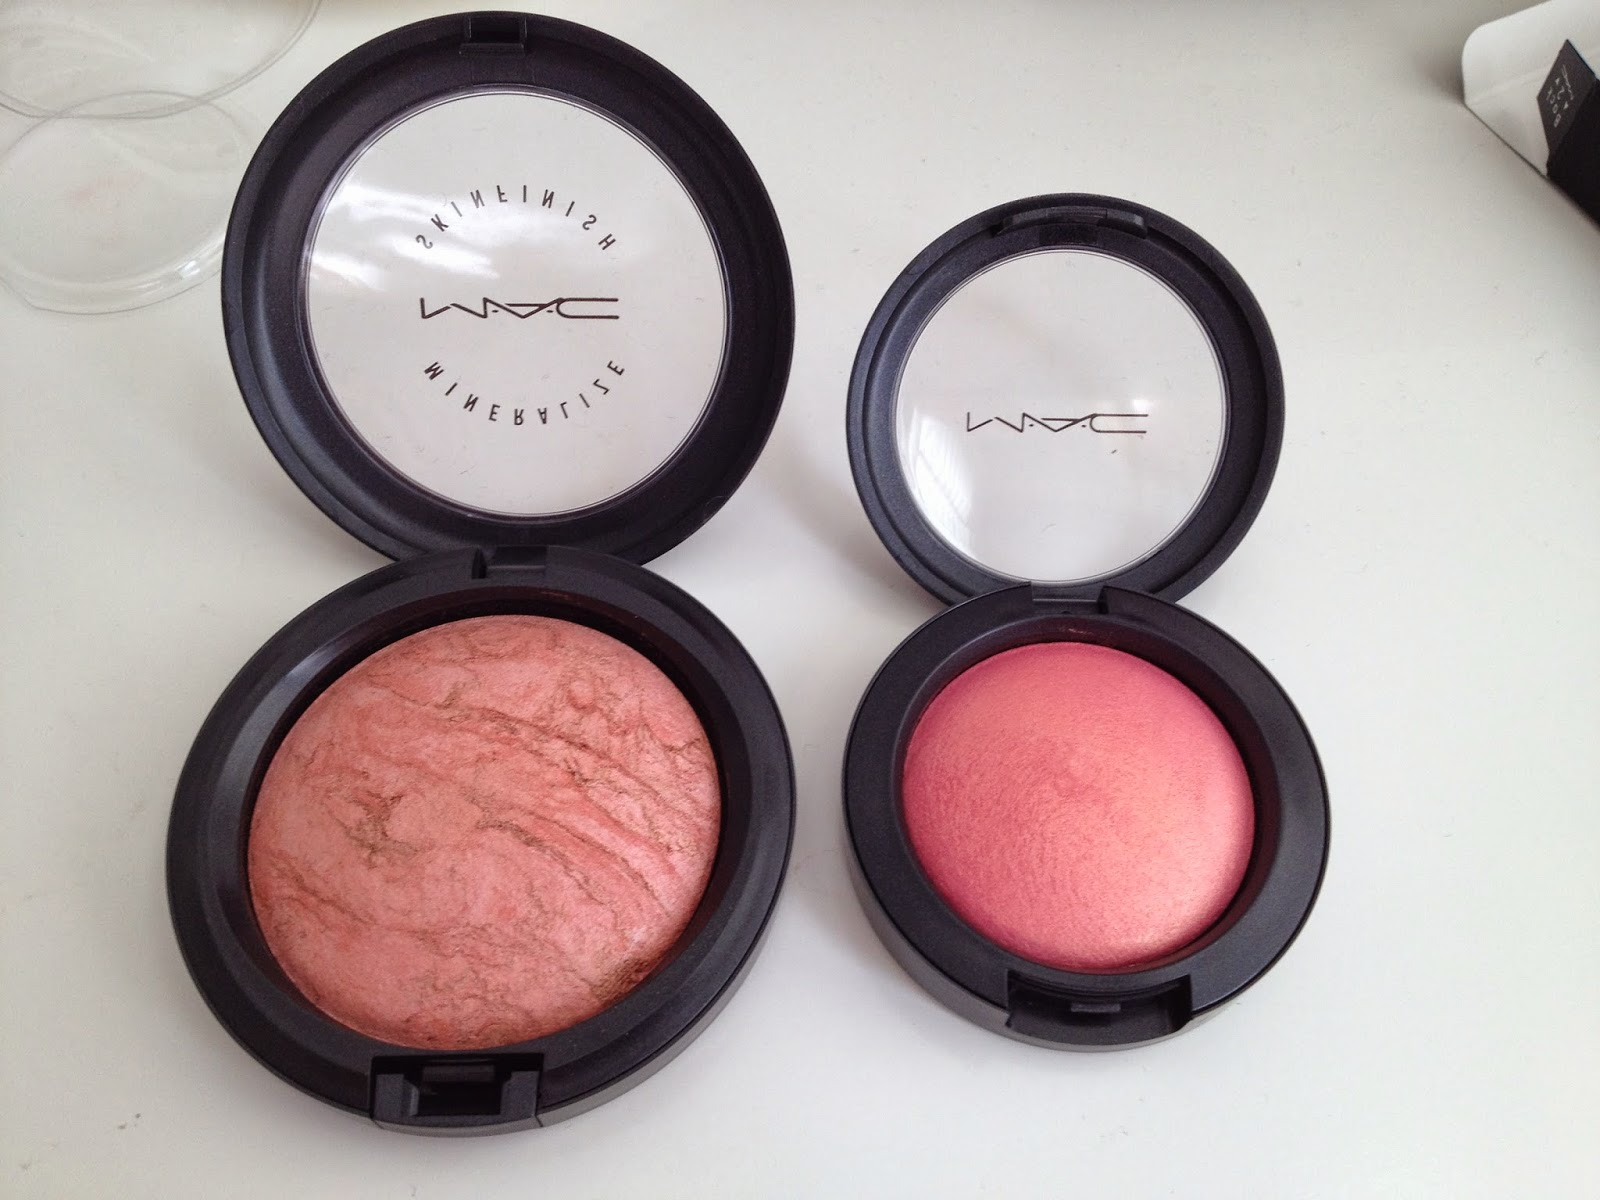 MAC Mineralize Blush In Petal Power & MAC Skin Finish in Stereo Rose